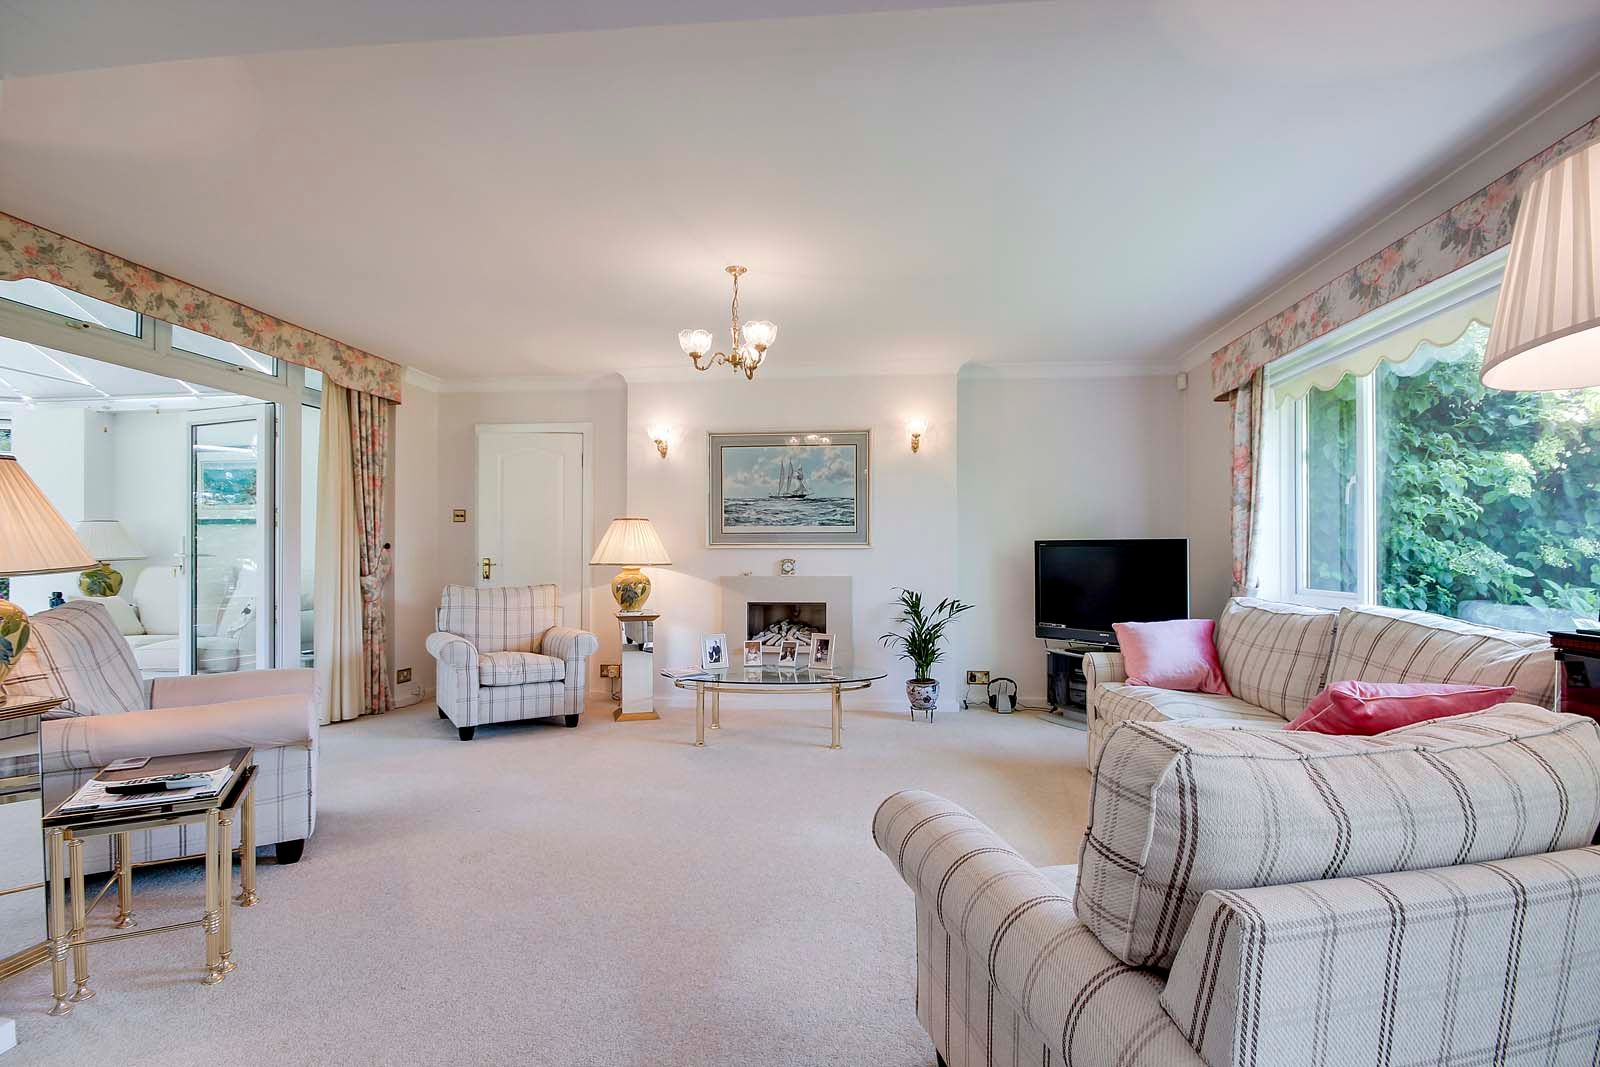 5 bed House for sale in The Willowhayne, East Preston - Sitting room (Property Image 15)